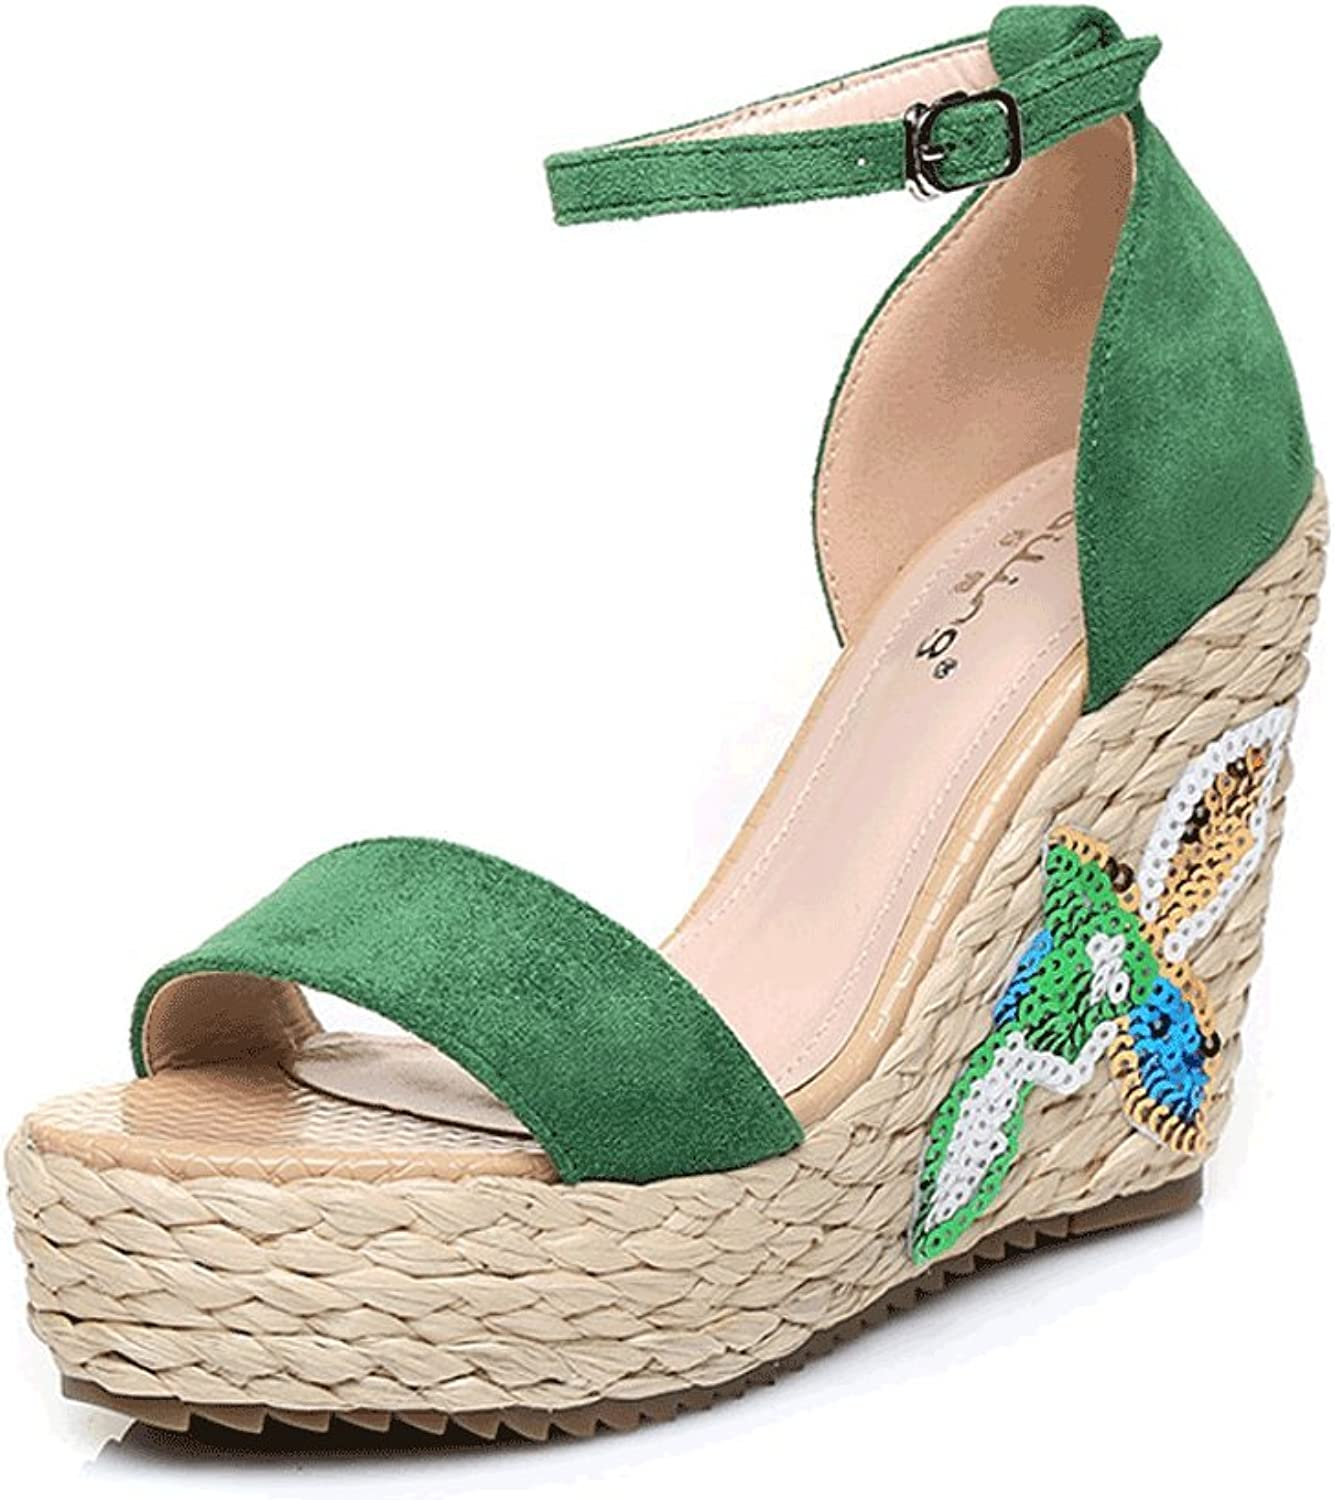 Sweet Wedges Sandals High Heels Bohemian Vintage Embroidered Open-Toe Woven Ankle shoes (color   Green 10.5cm, Size   34)